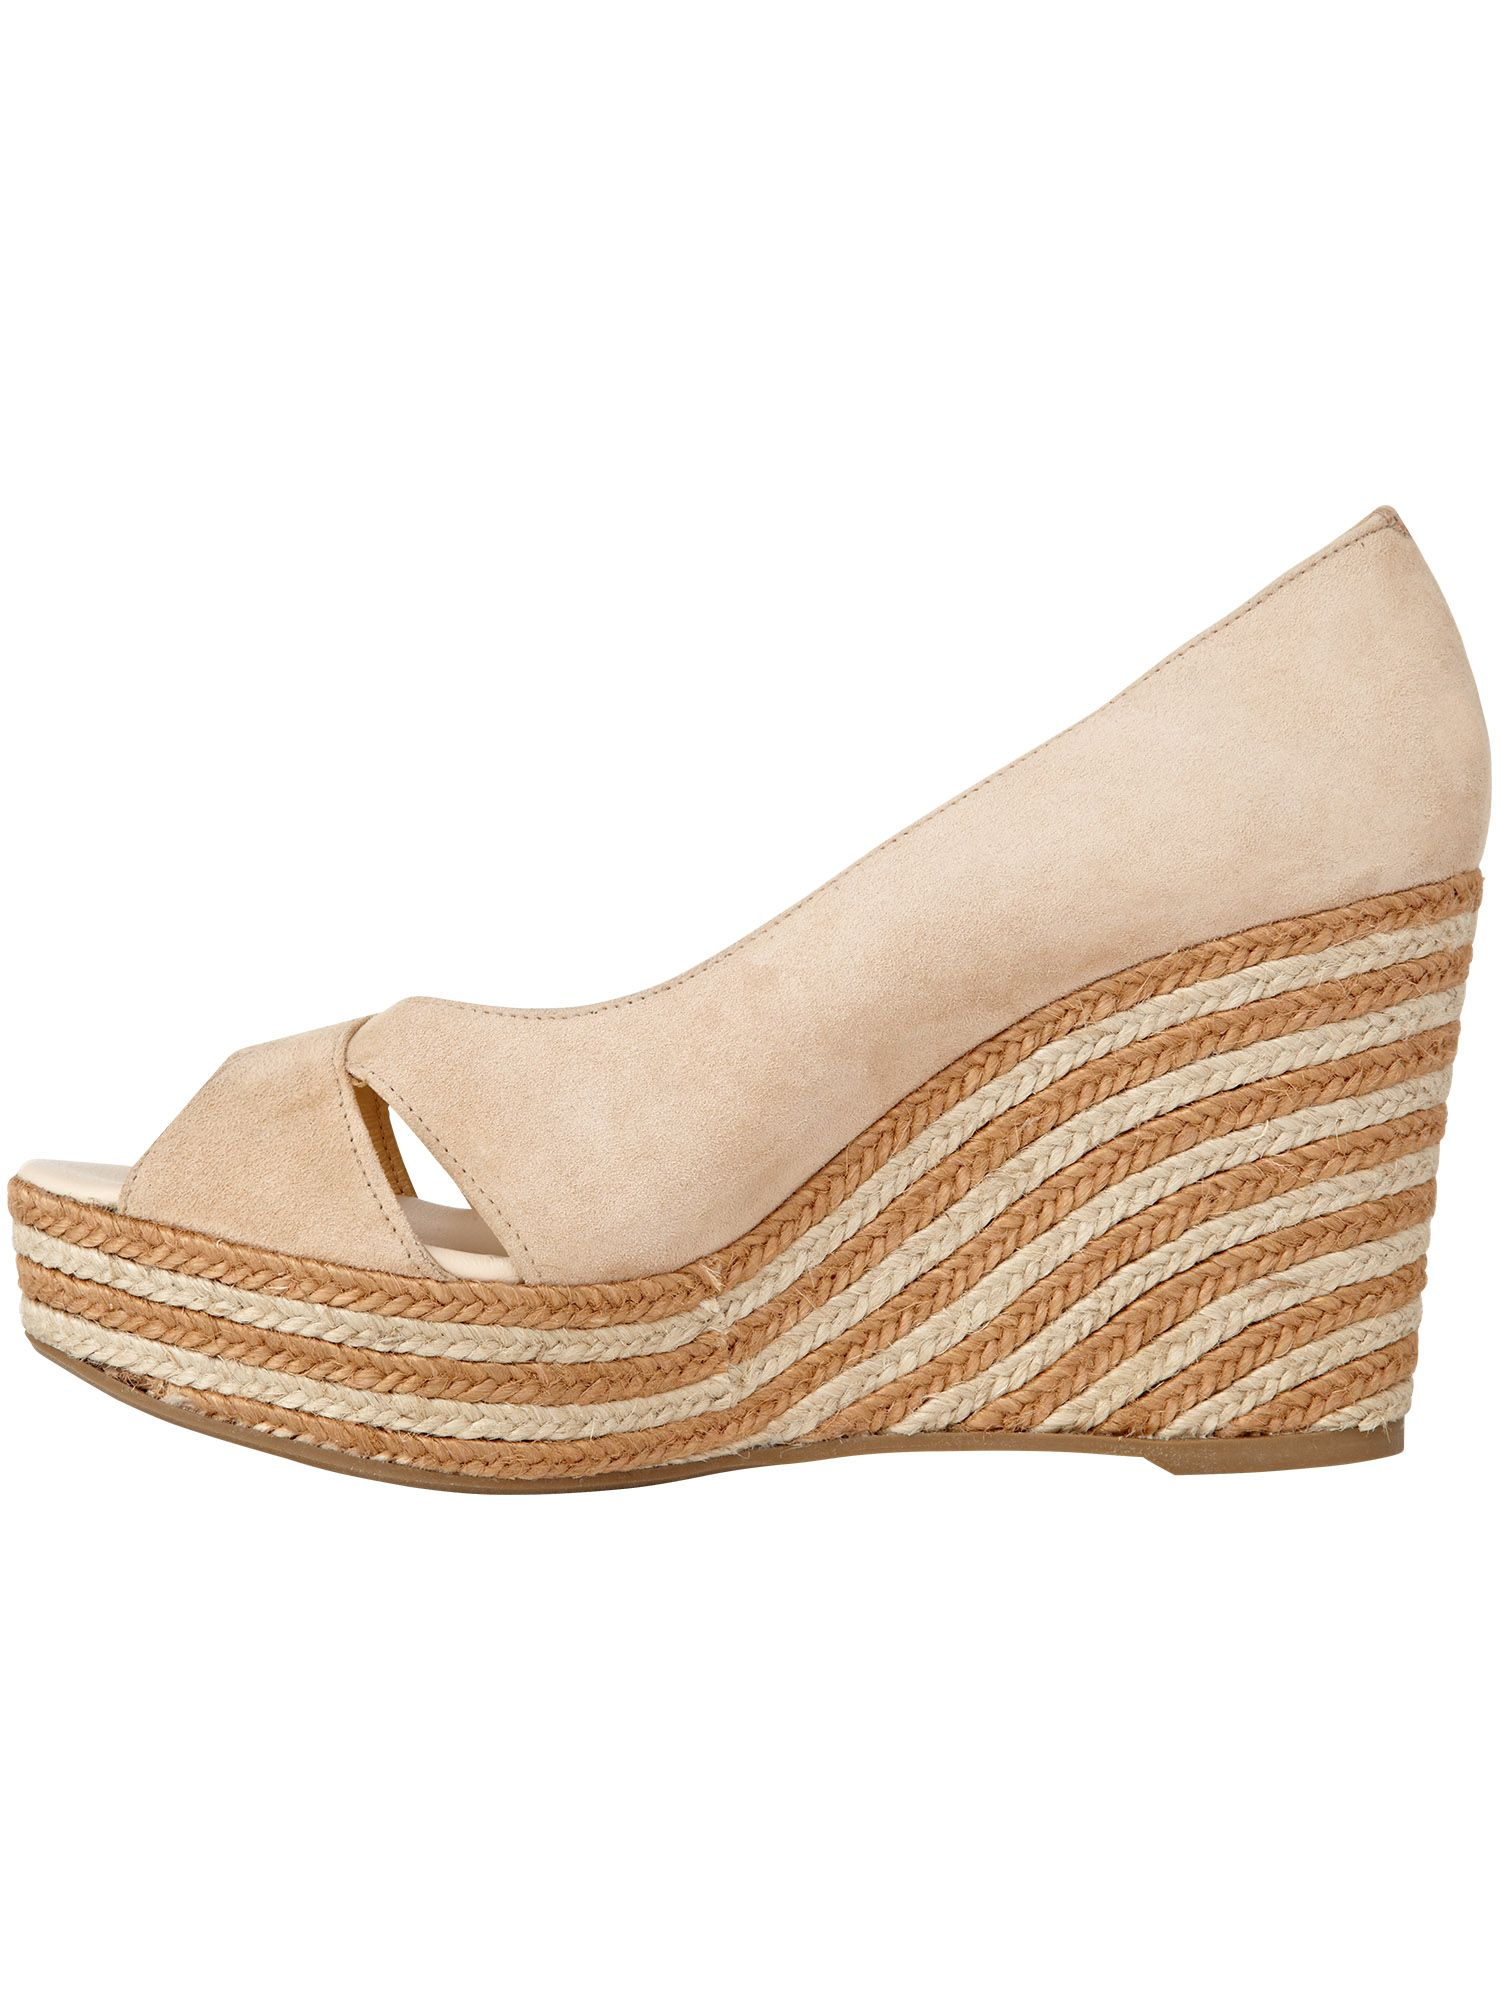 Jasmin espadrille wedge shoes